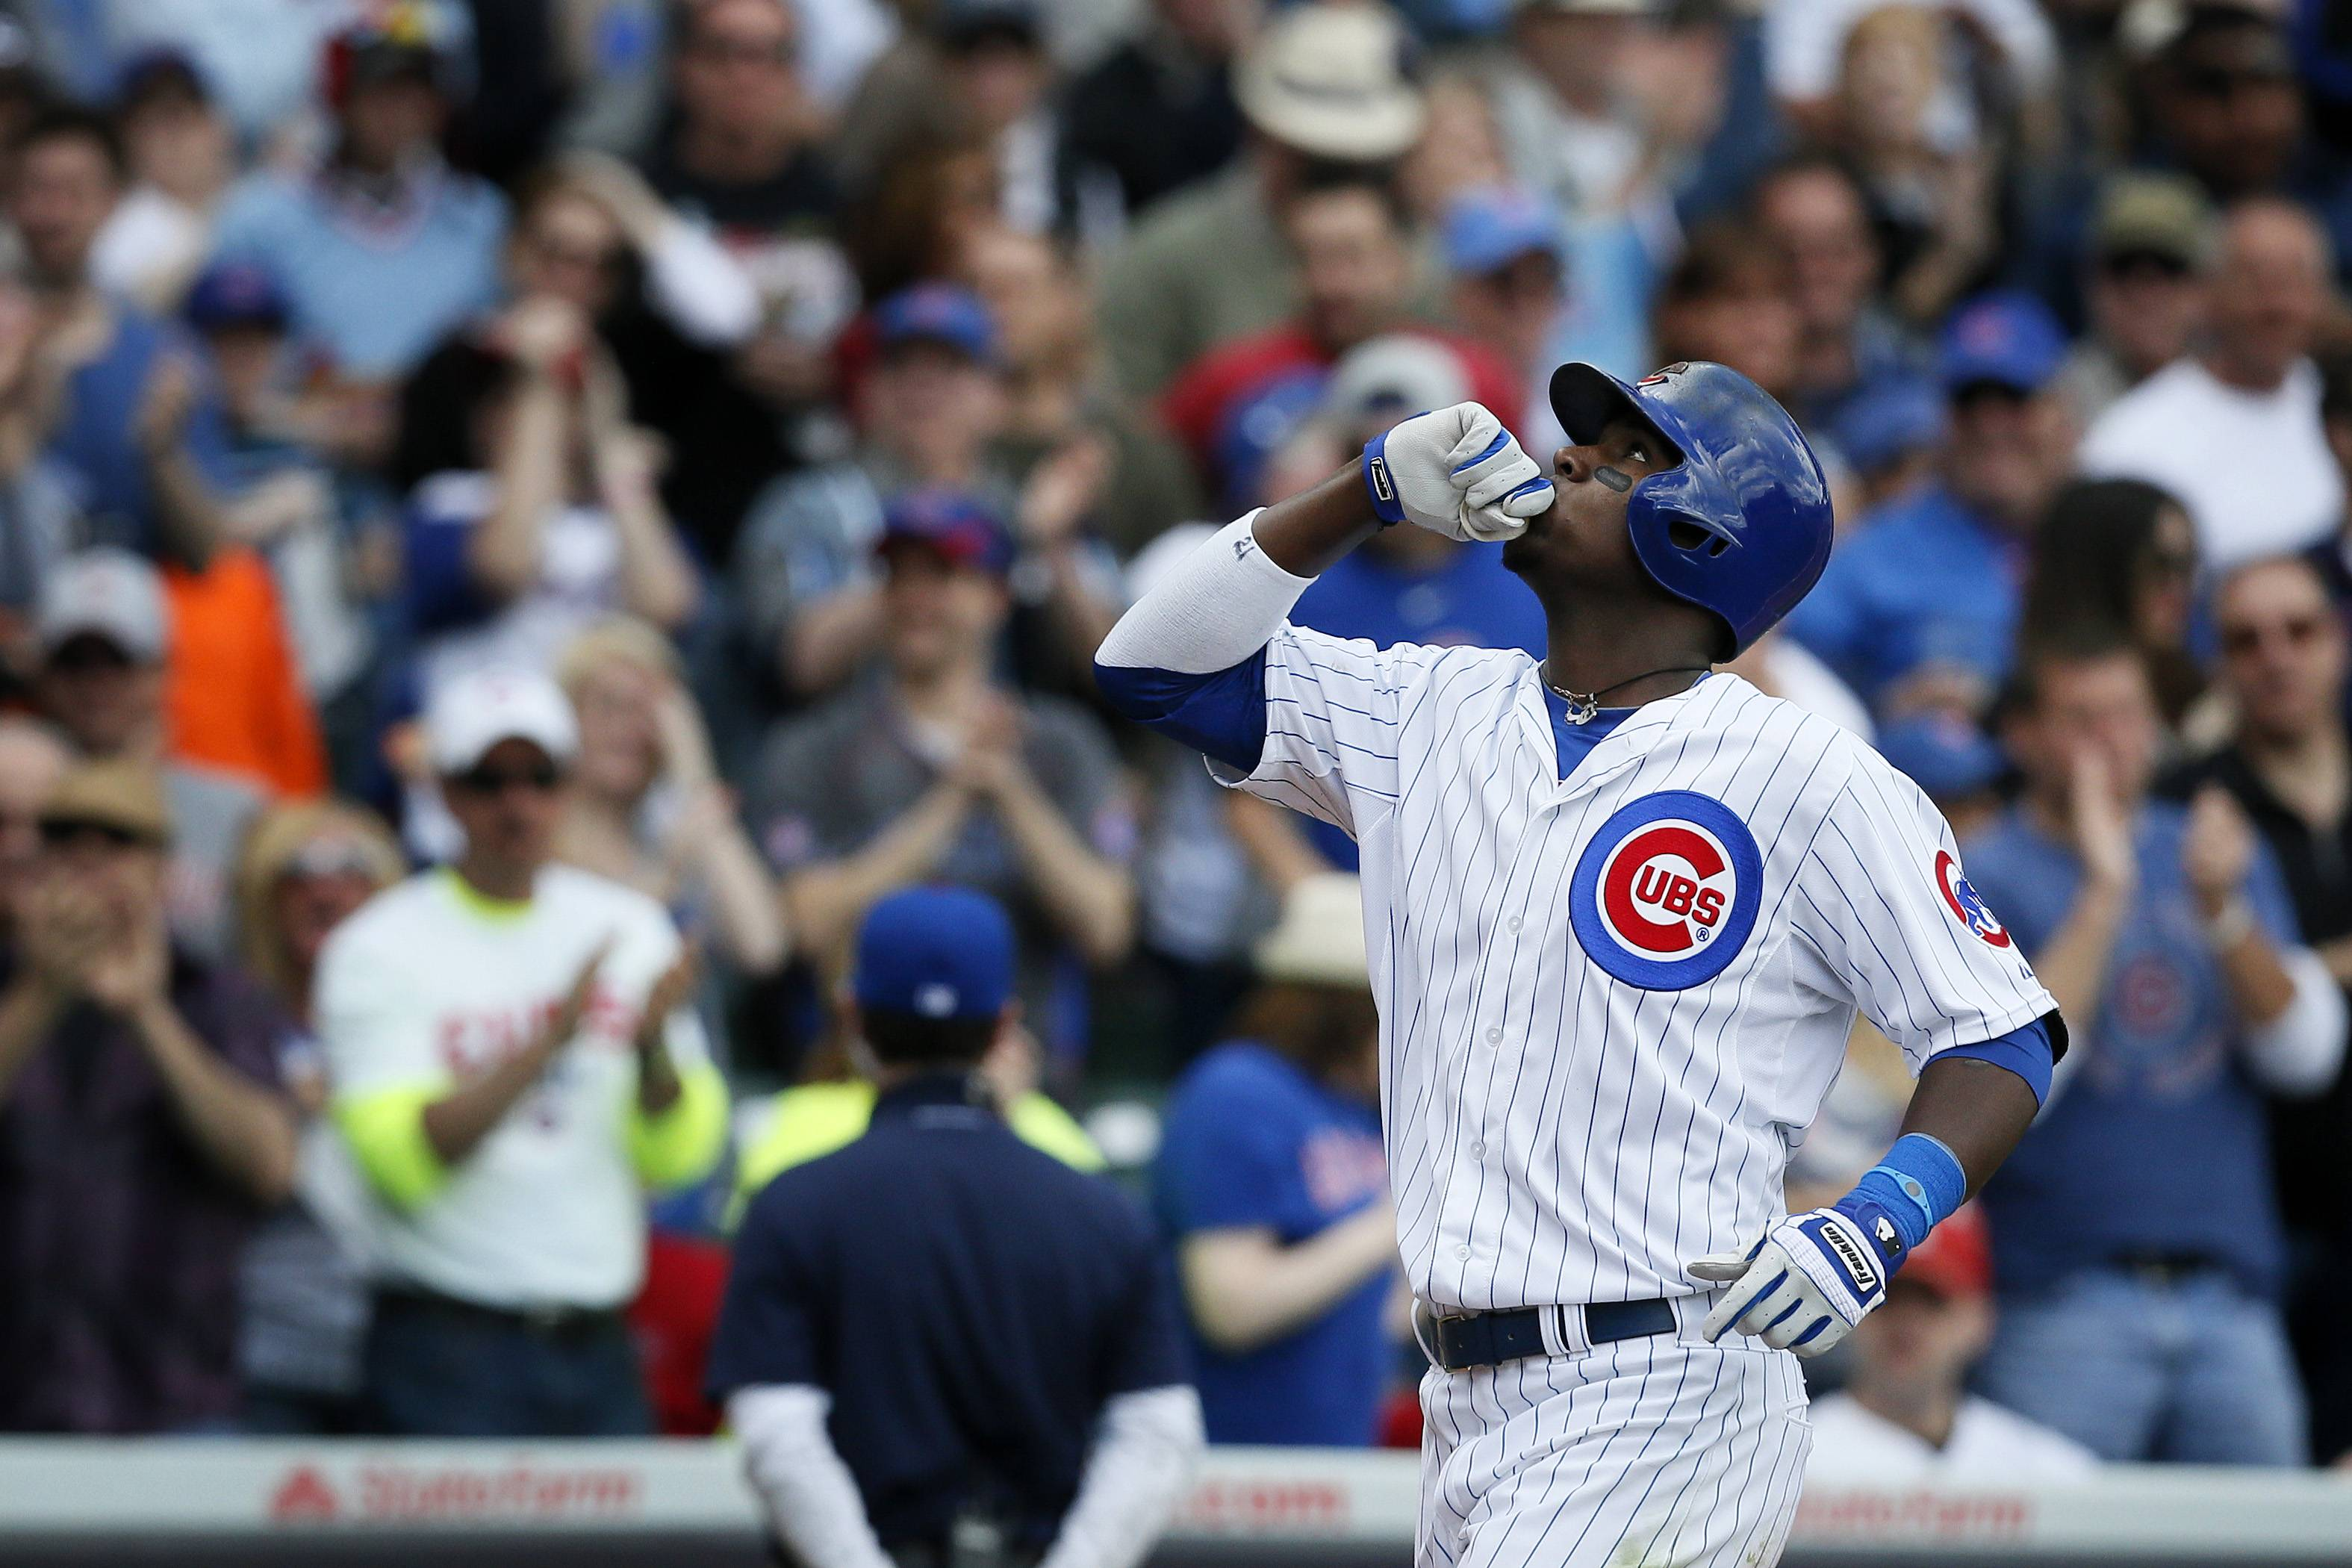 Junior Lake celebrates after hitting a 2-run homer in the sixth inning that gave the Cubs a 2-0 lead over St. Louis.